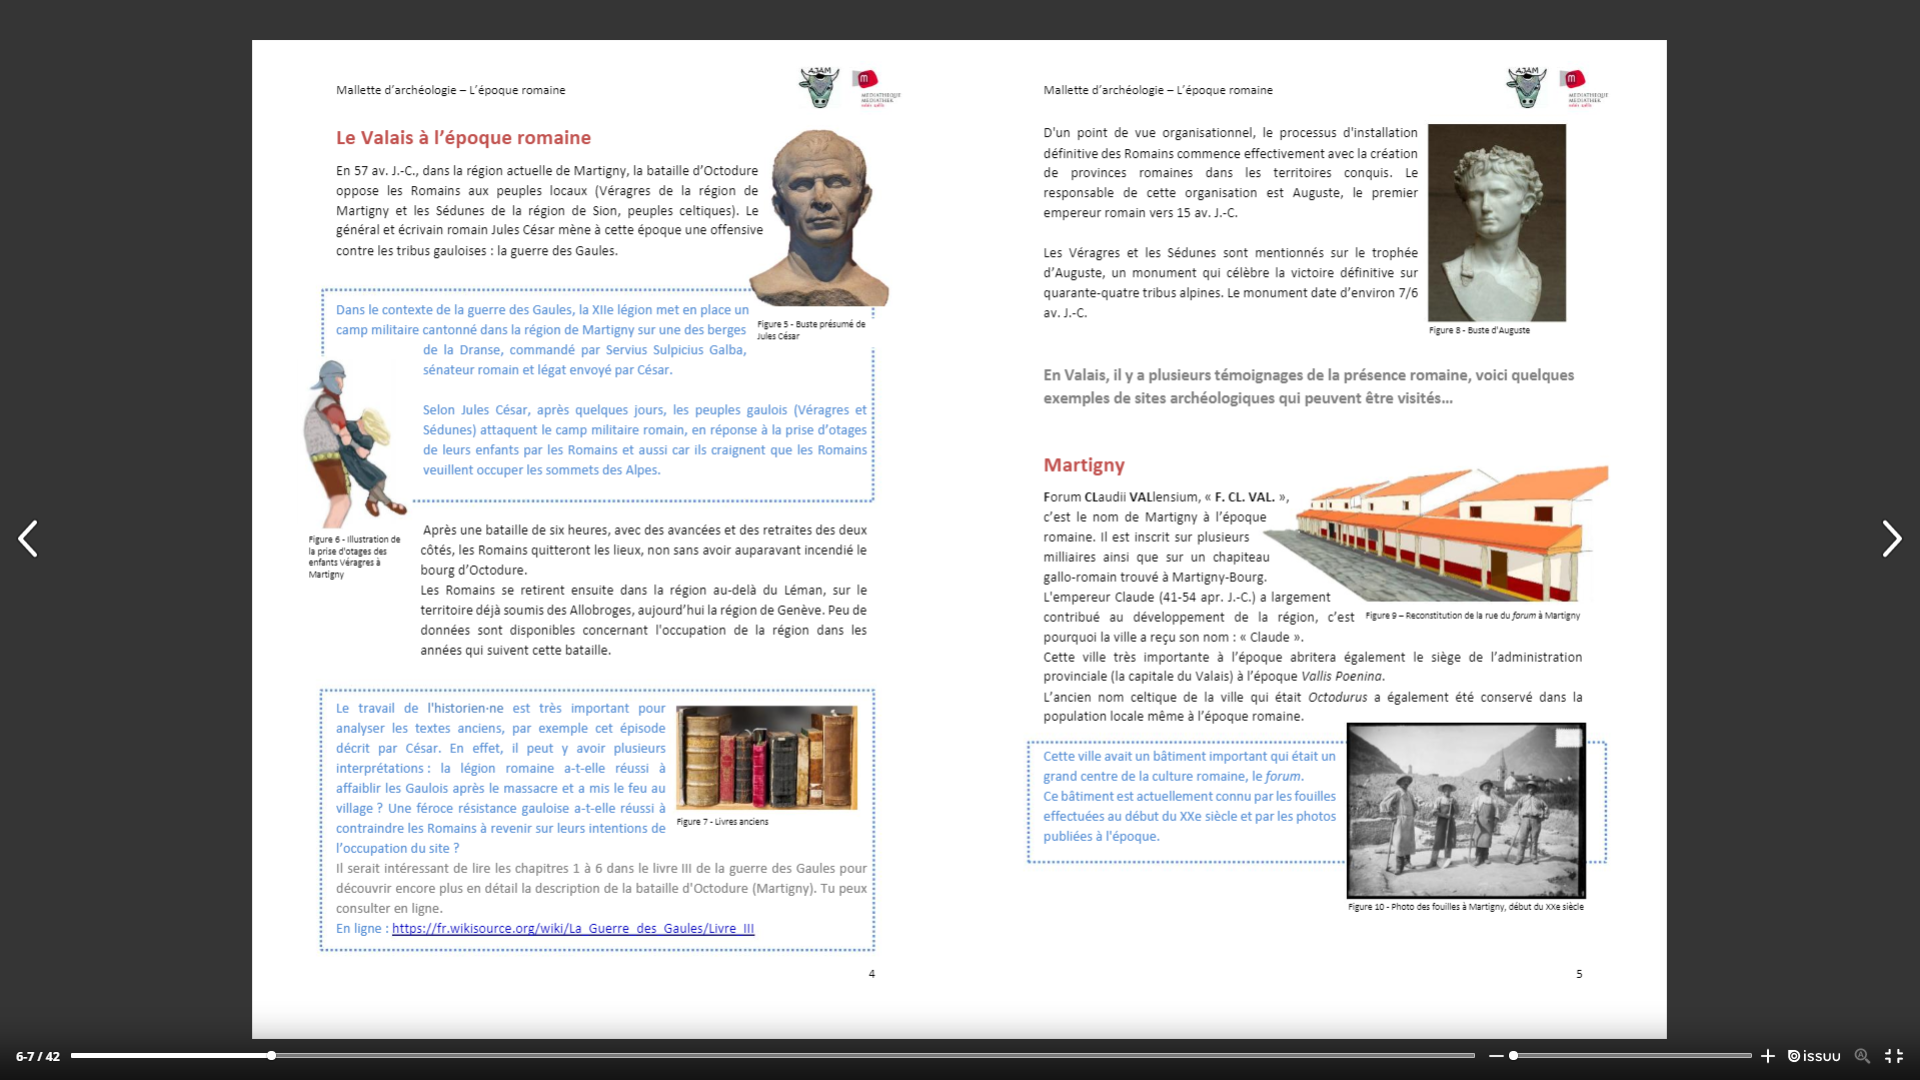 Pages 4-5